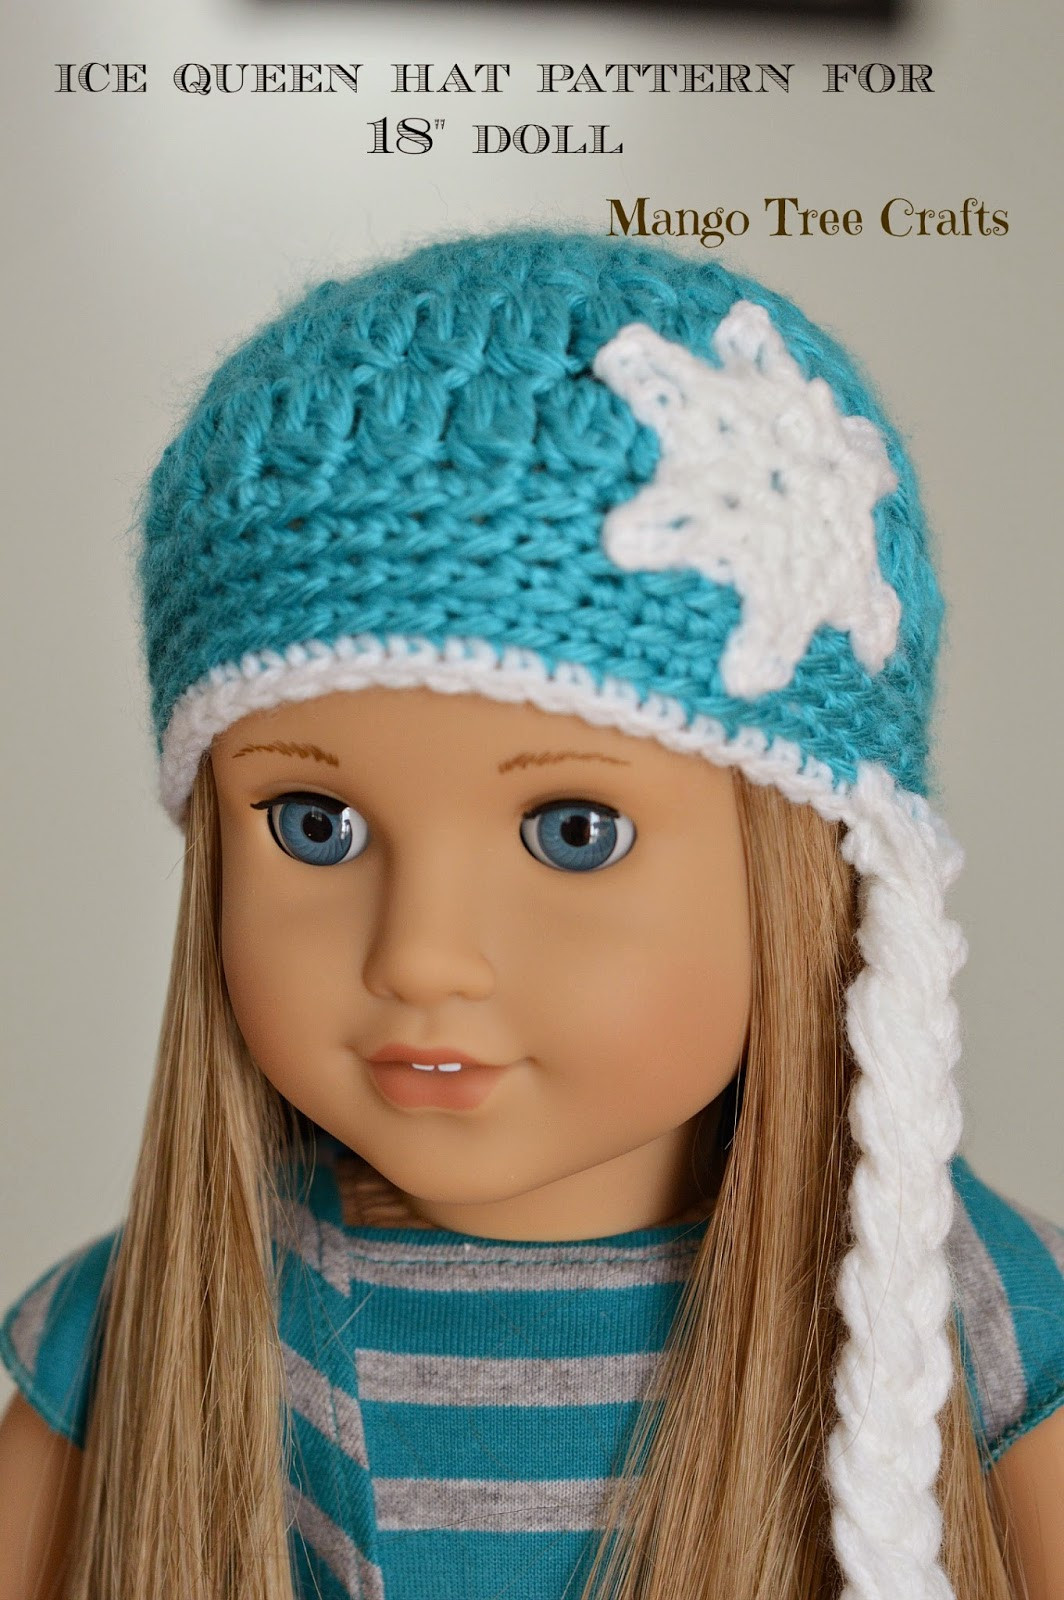 Crochet Girl Hat Elegant Mango Tree Crafts Ice Queen Crochet Hat Pattern for 18 Of Superb 47 Pics Crochet Girl Hat